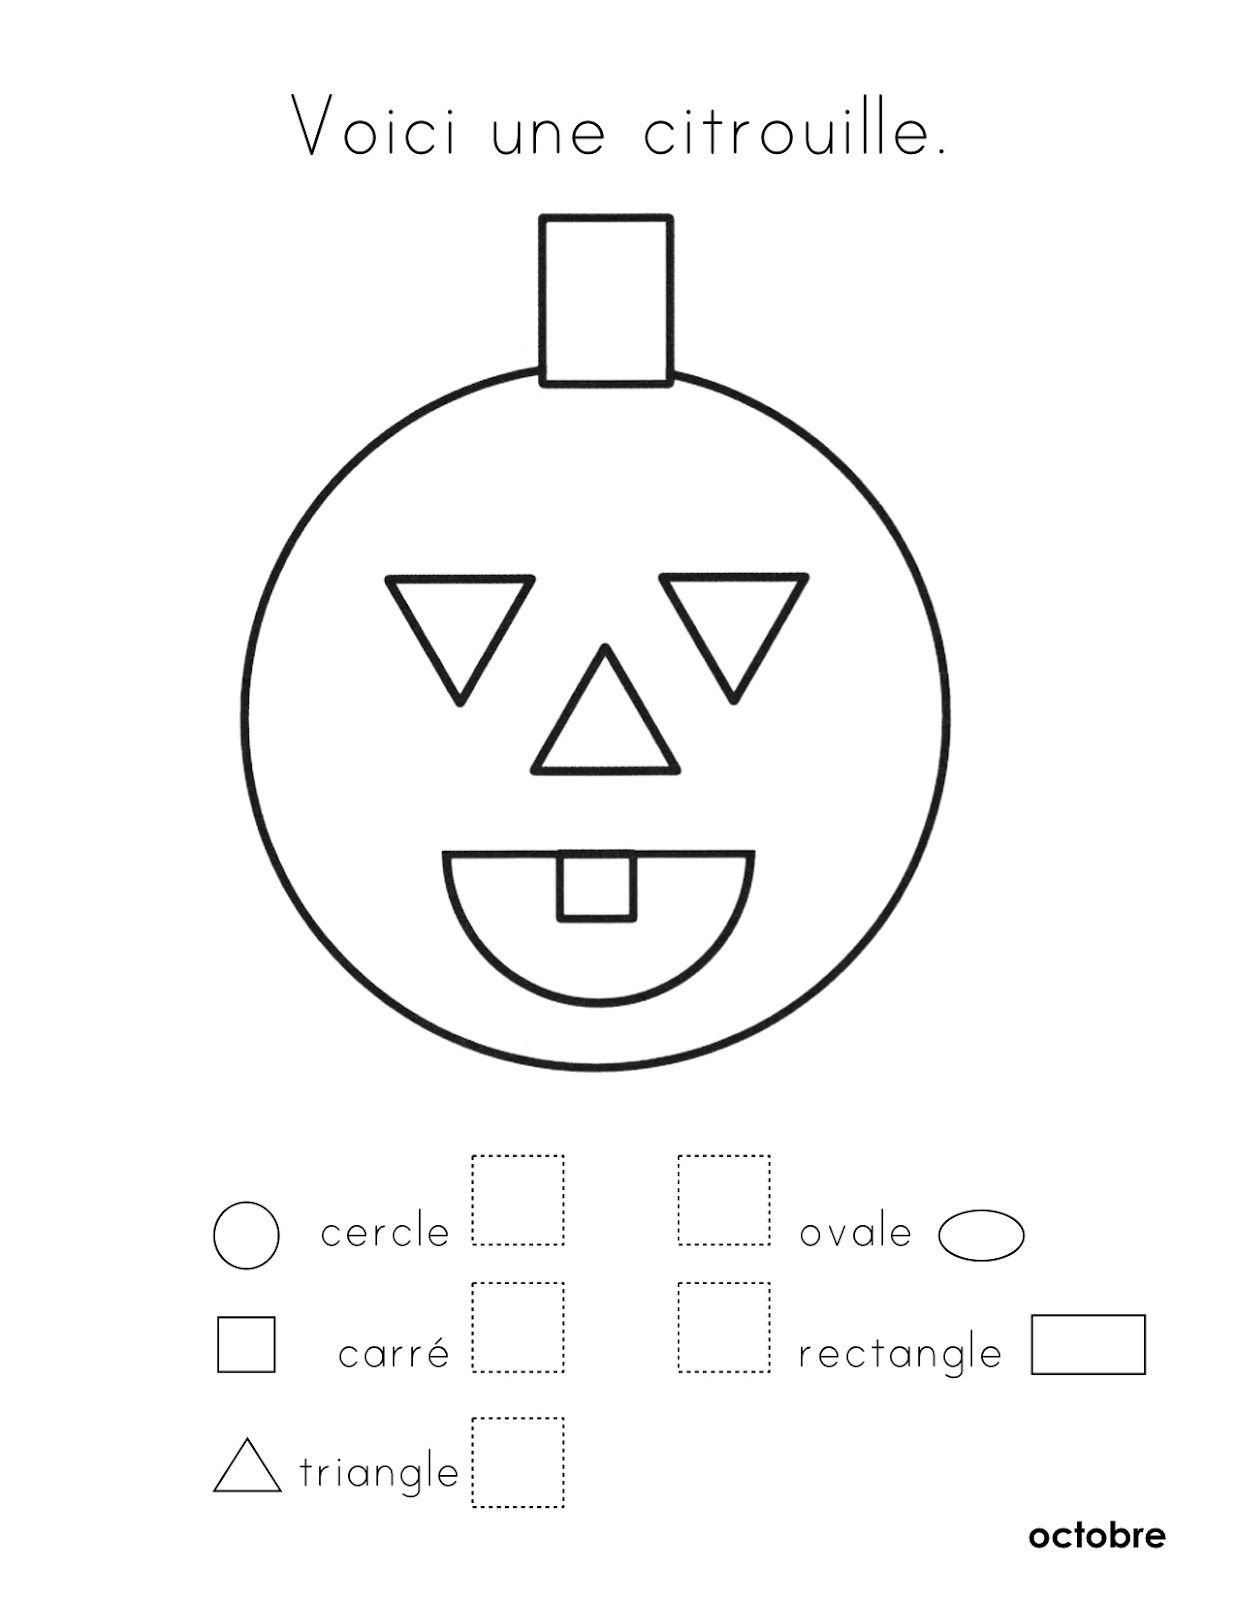 La Nuit, Les Formes, L'halloween | French Worksheets, Learn